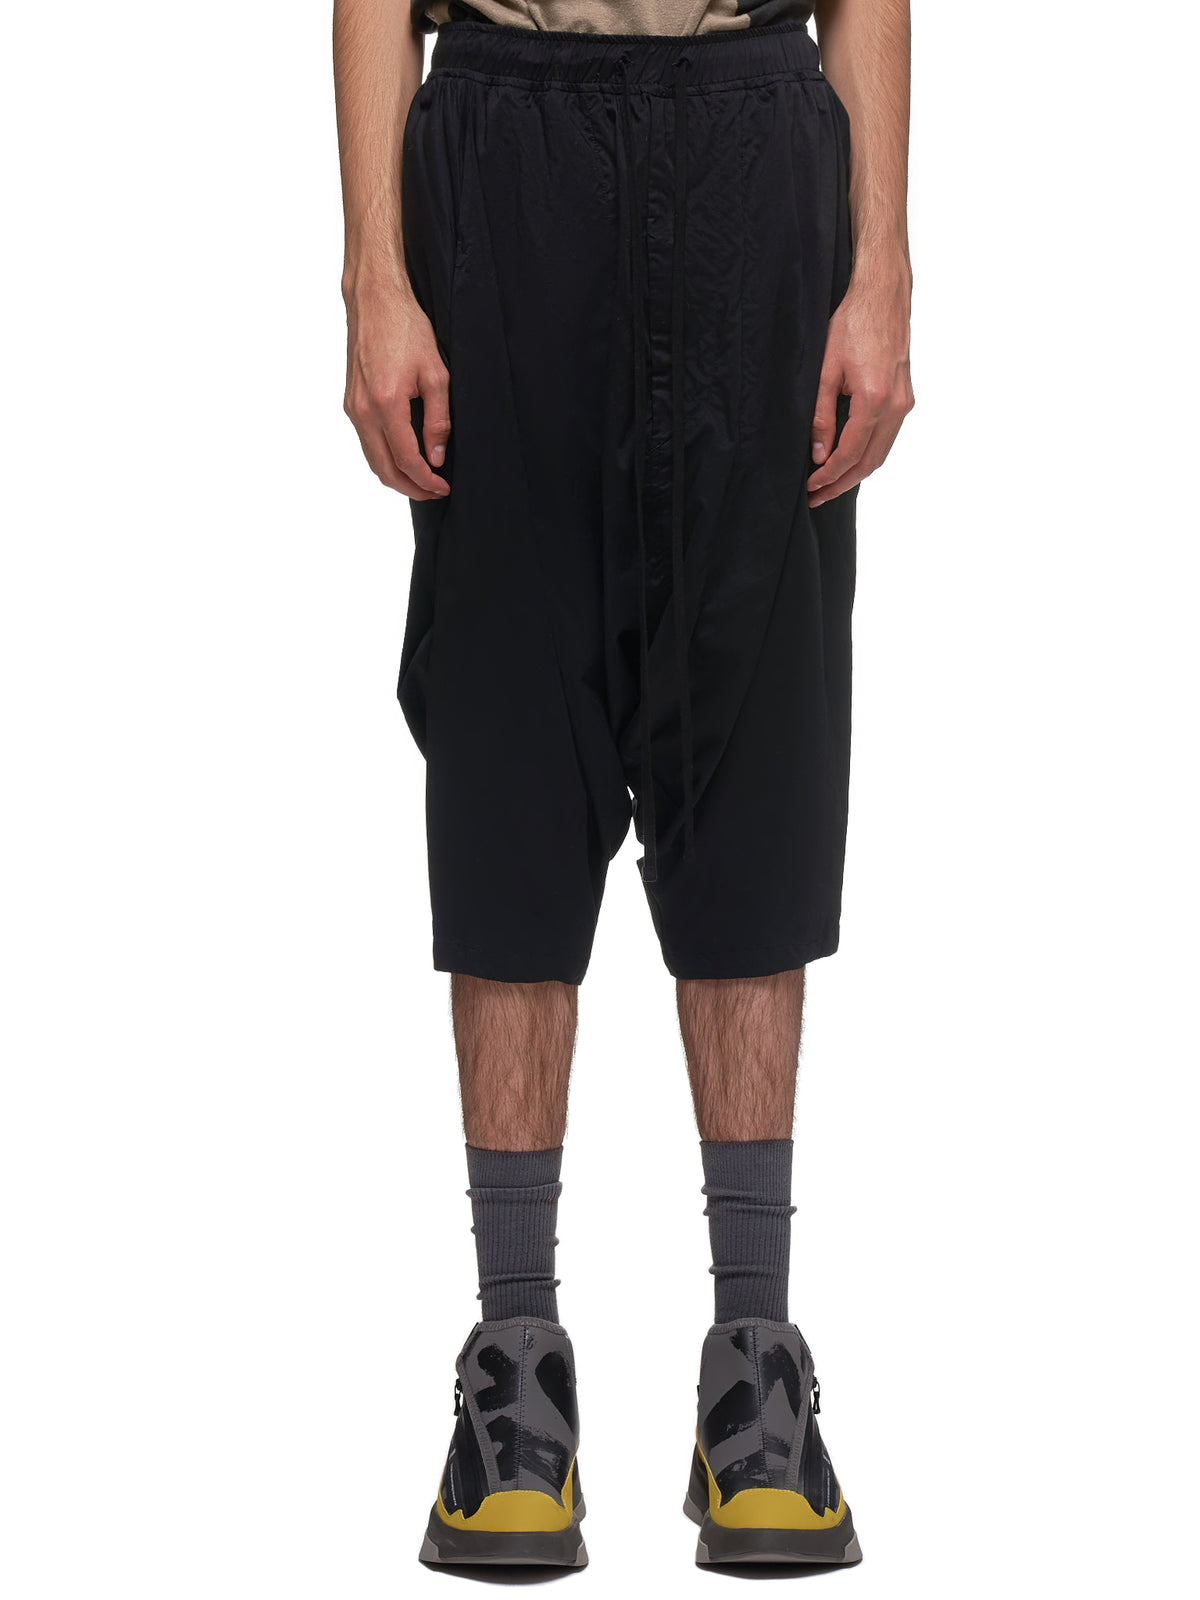 Draped Drop Crotch Shorts (697PAM6-BLACK)